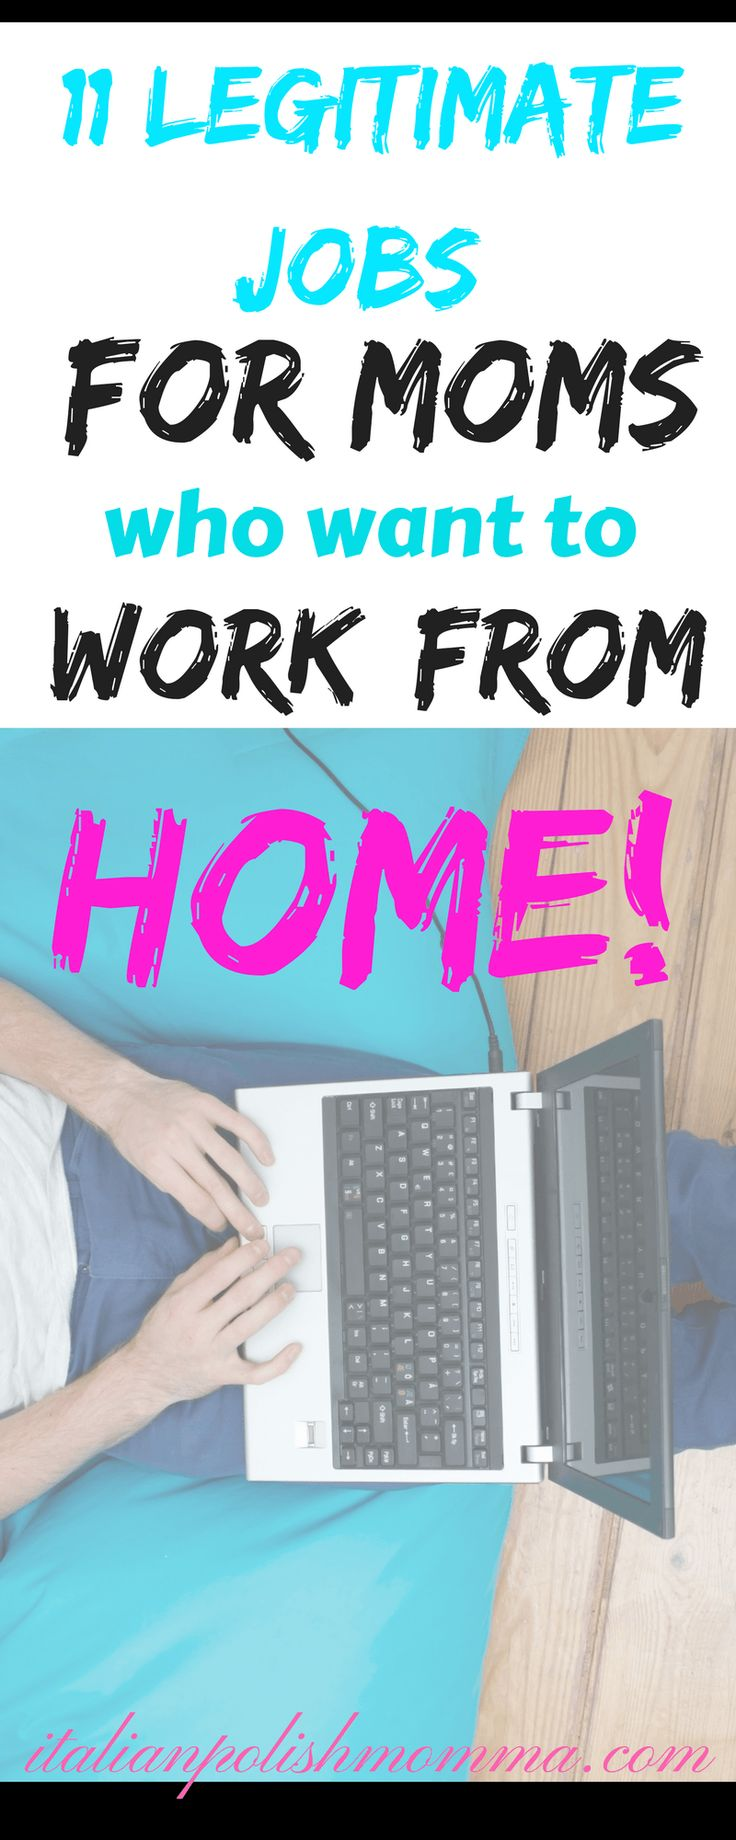 Are you a mom looking for a legitimate work from home job? Check out these 11 jobs that you can work from home and make great money and still be home to raise your kids!